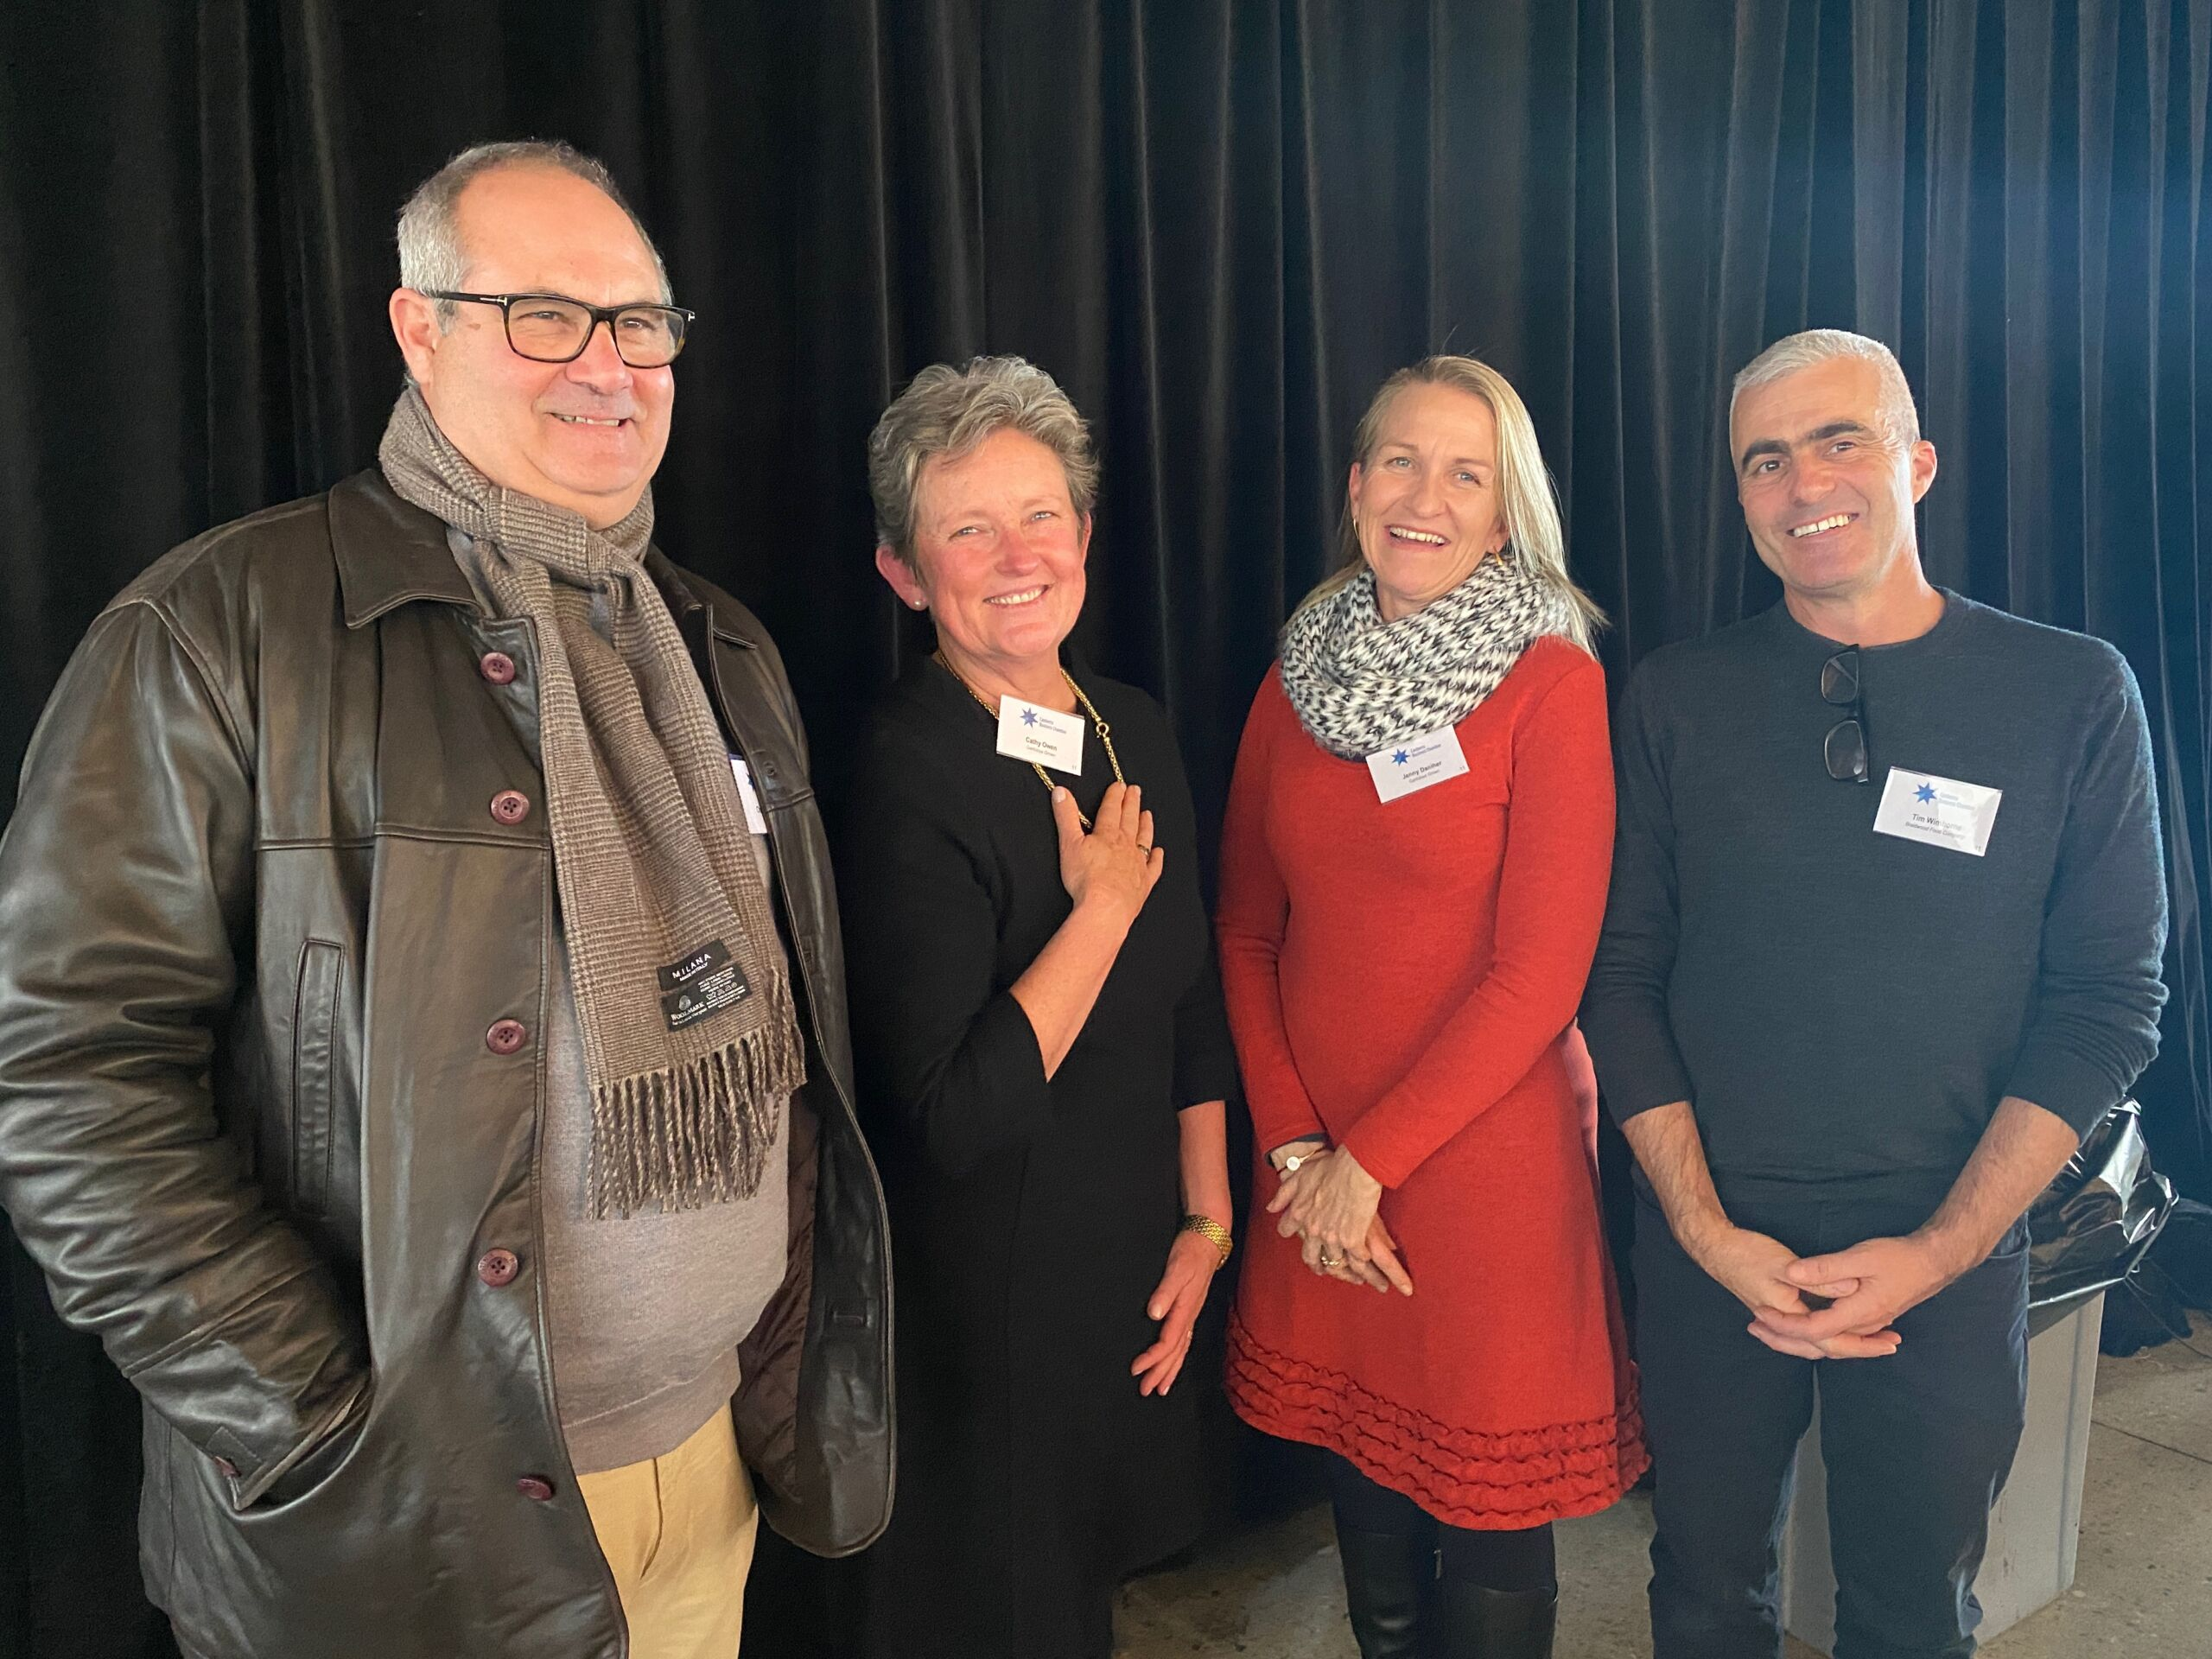 L-R Charlie La Barre de Nanteuil of La Barre Olives, Cathy Owen and Jenny Daniher of Garlicious Grown and Tim Wimborne of Braidwood Food Company